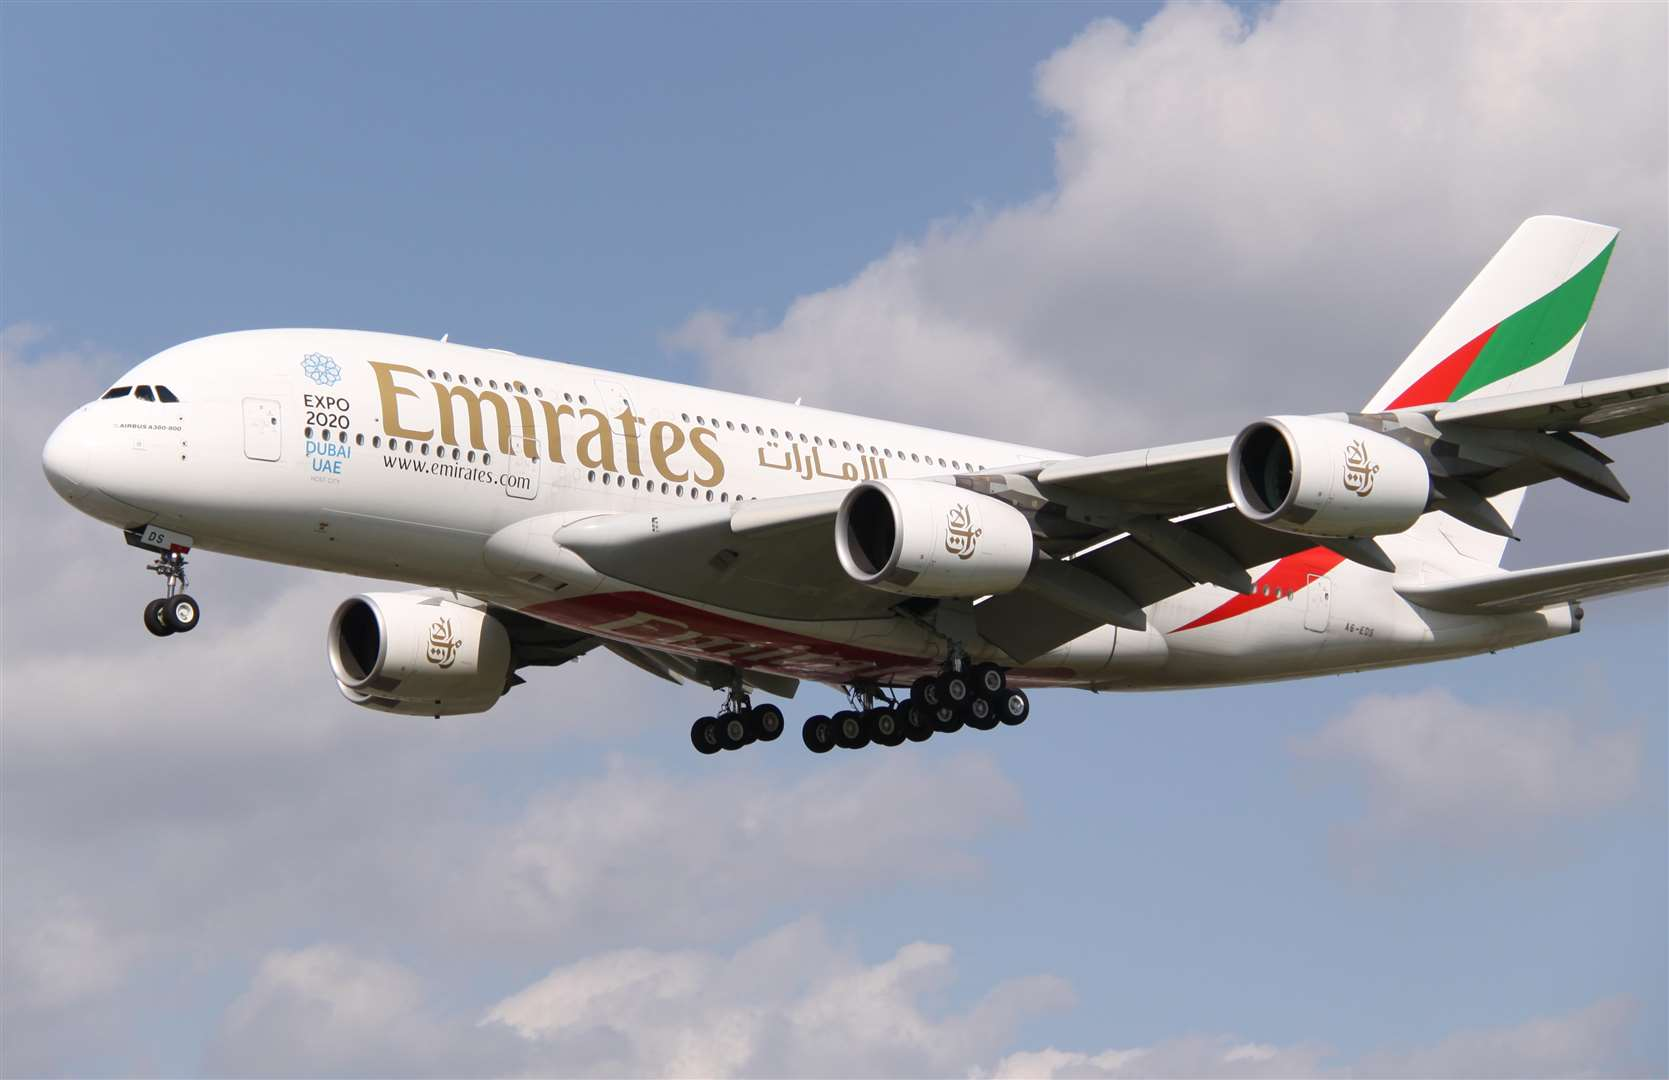 Ellie Holman was detained after taking an Emirates flight to Dubai